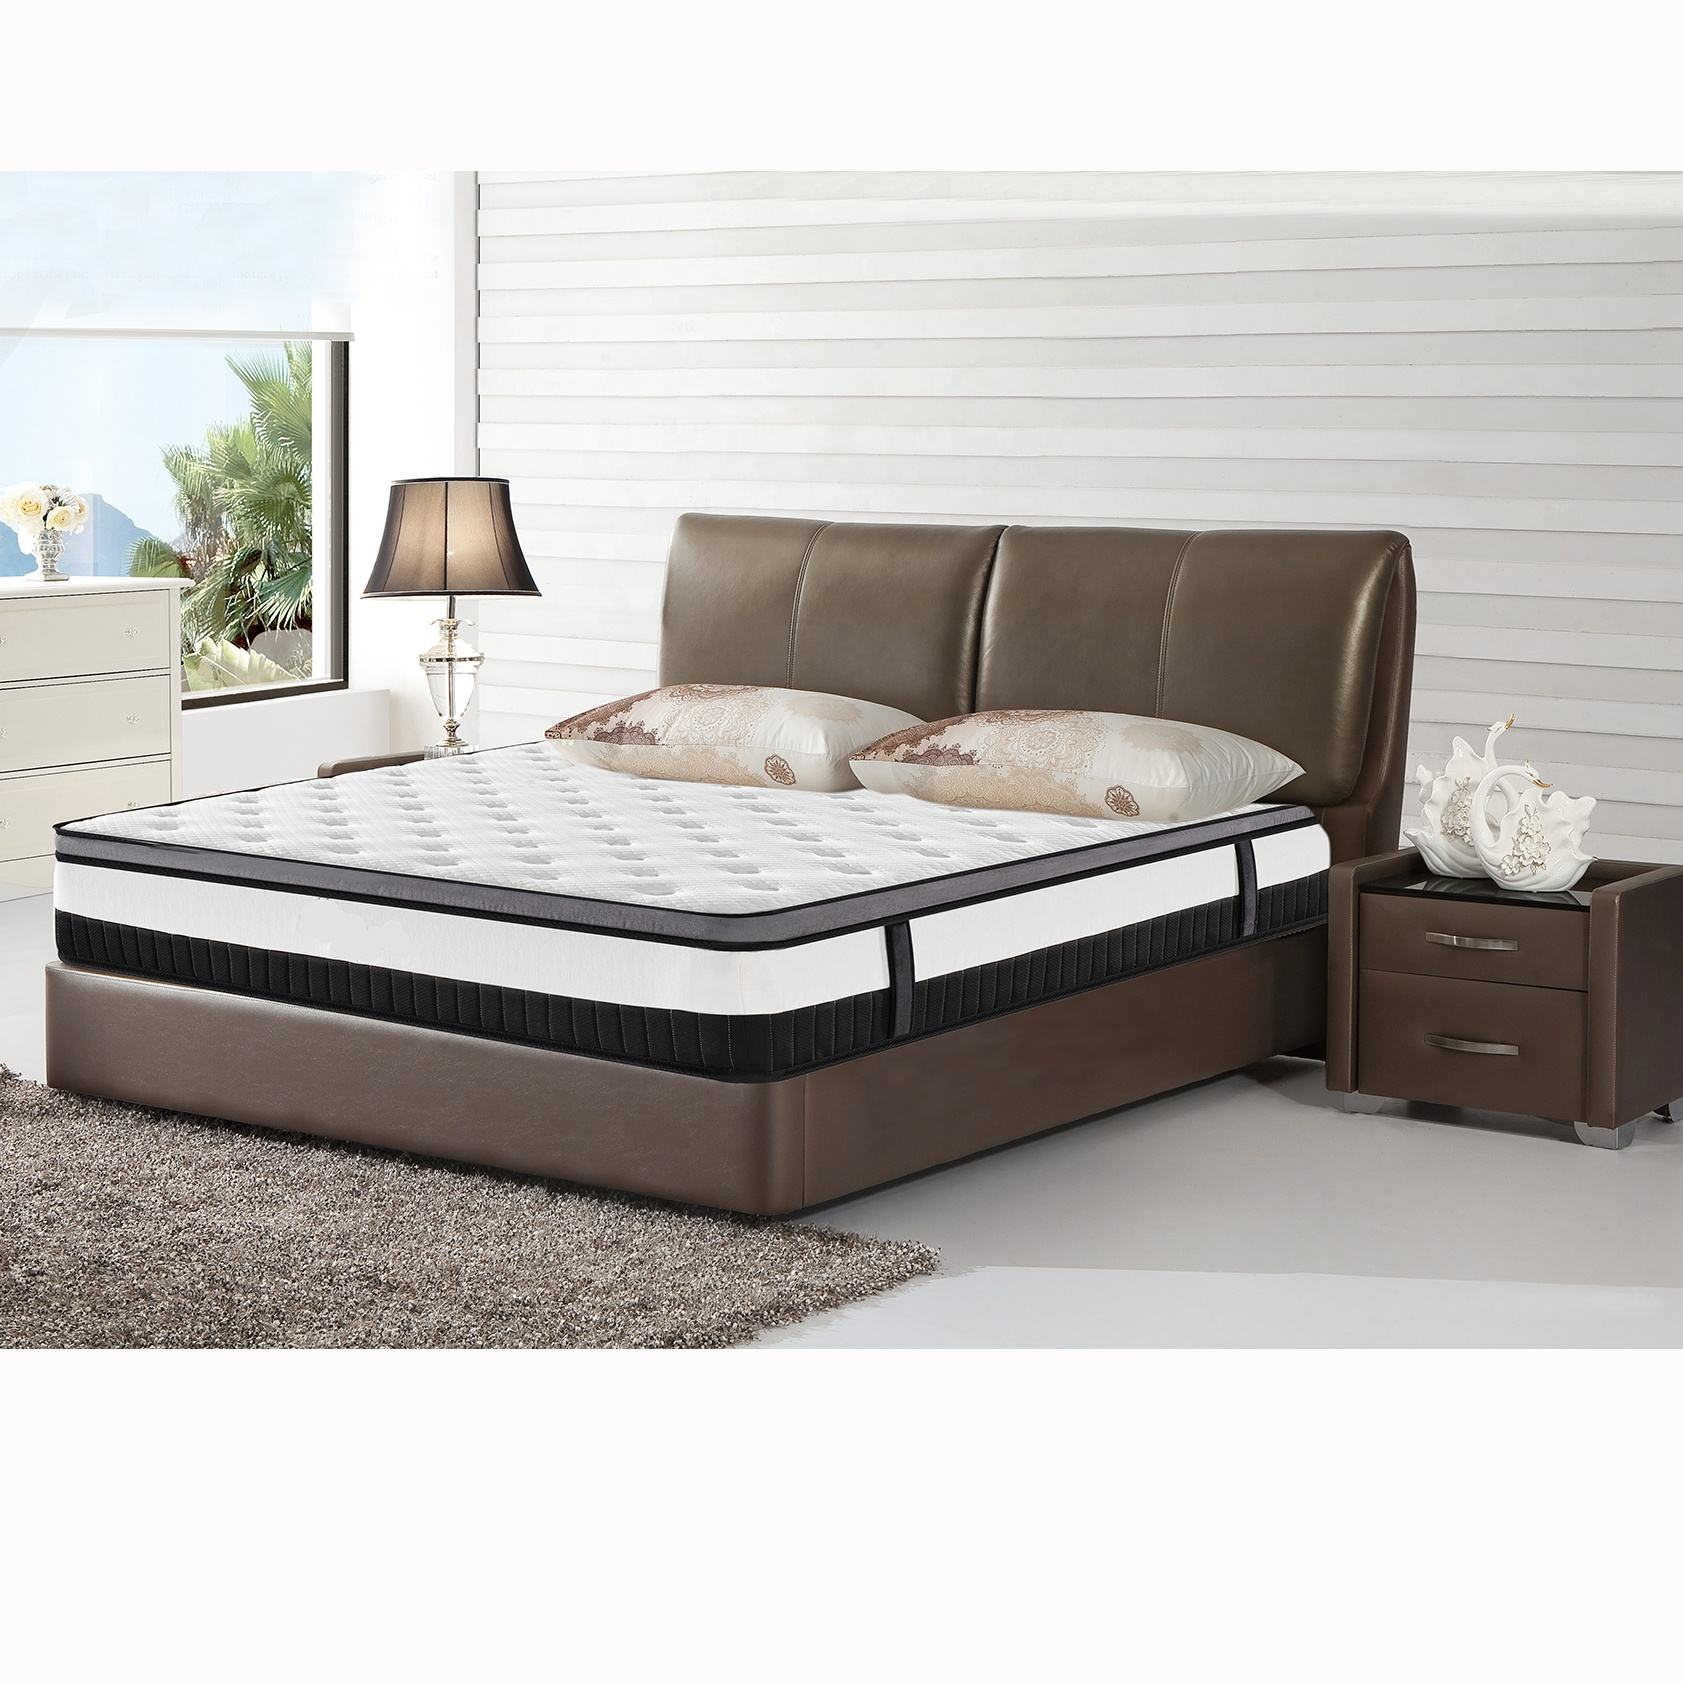 Hotsale bedroom furniture made in china vacuum compress coil spring mattress